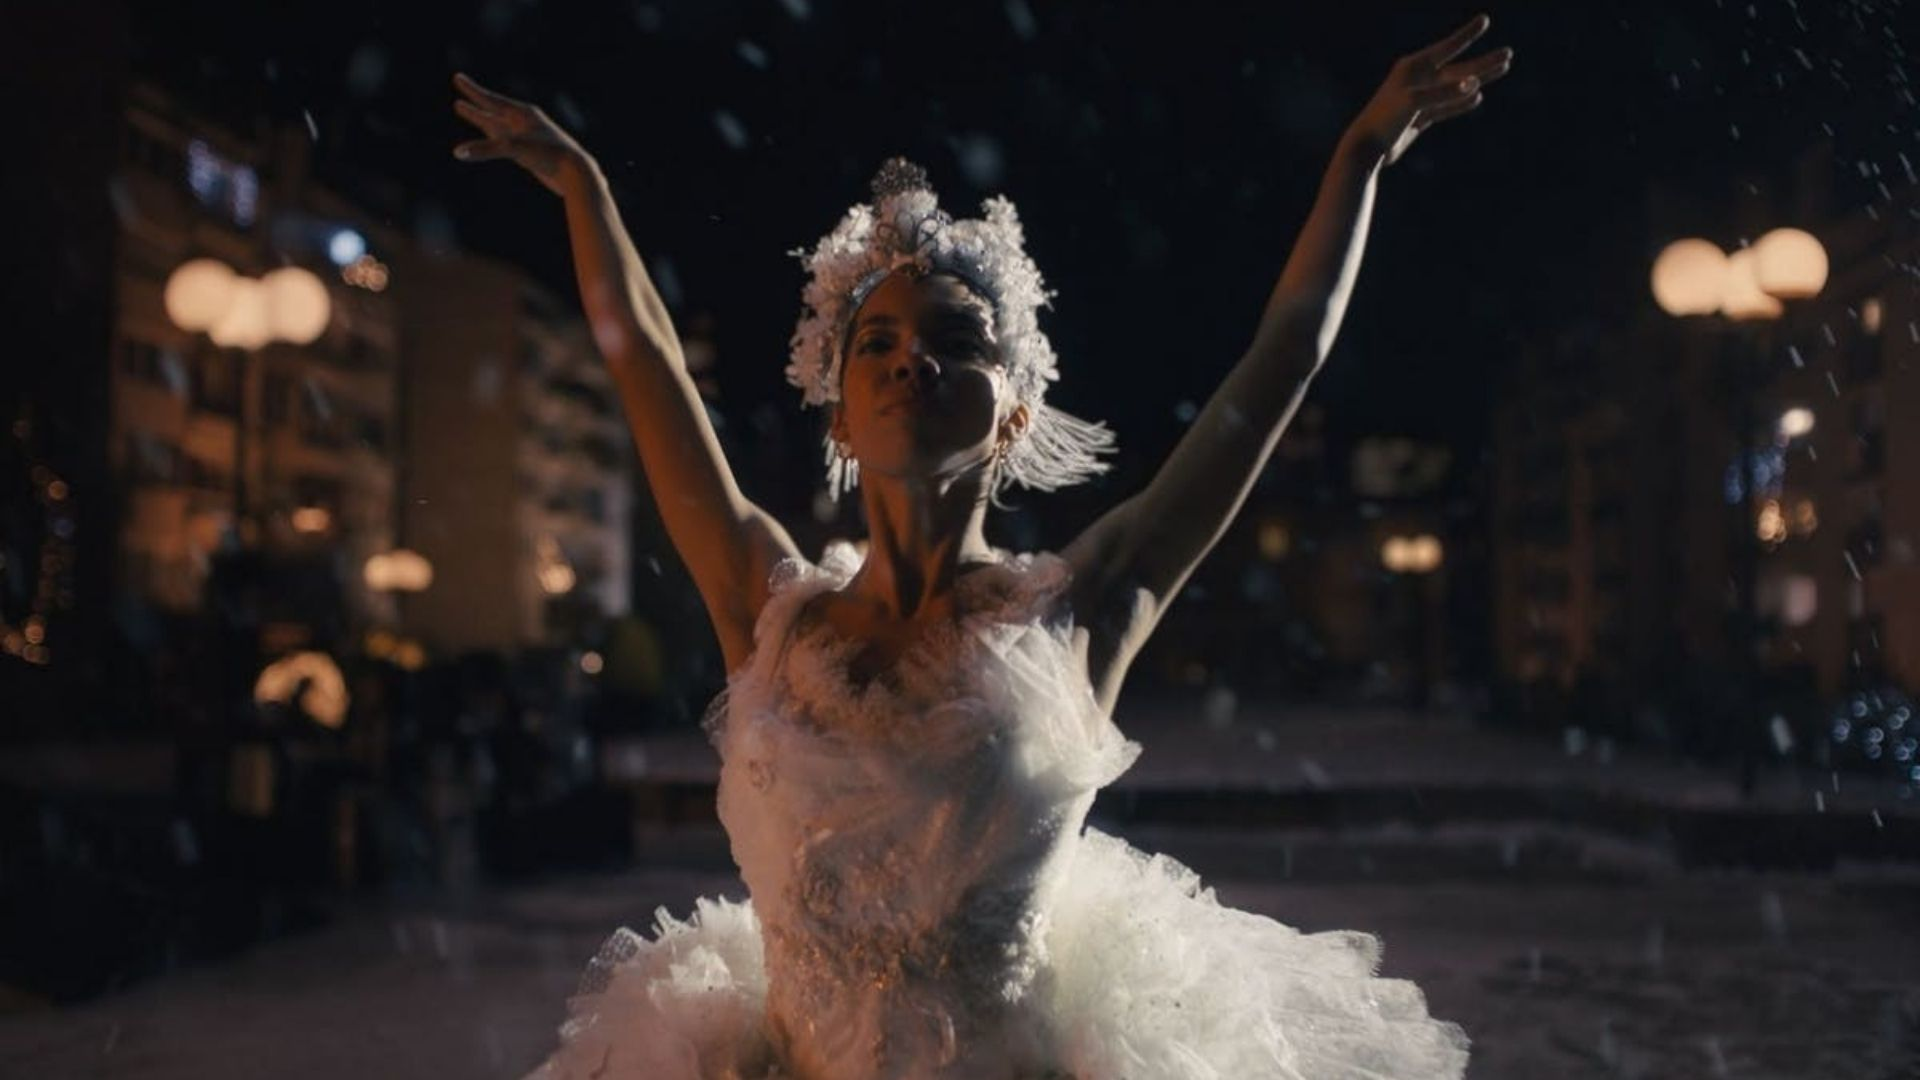 Black female ballet dancer in white dress and headdress with both of her arms raised.